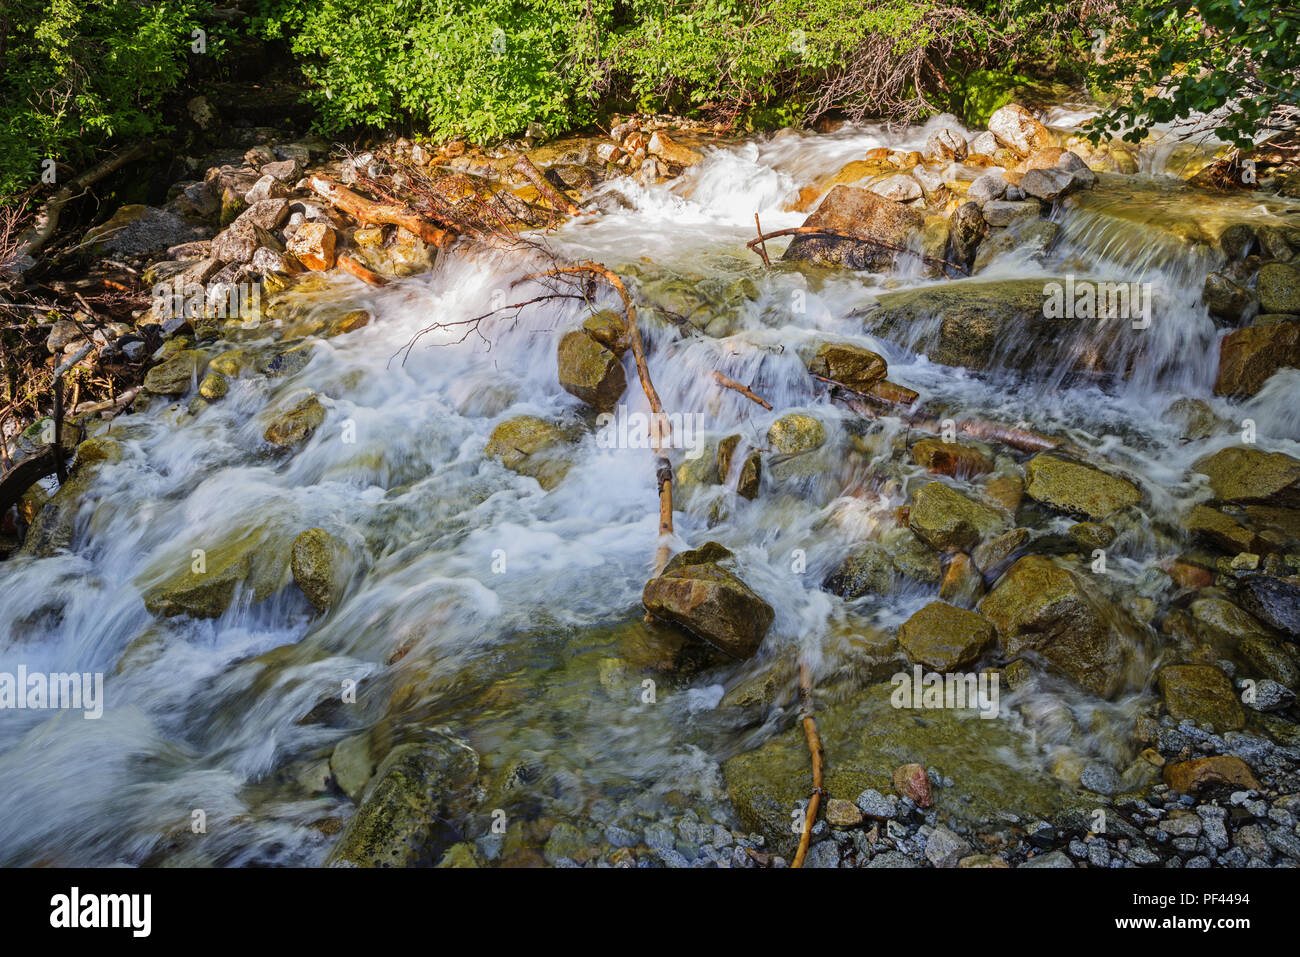 rushing water at a stream crossing on the Taboose Pass trail - Stock Image